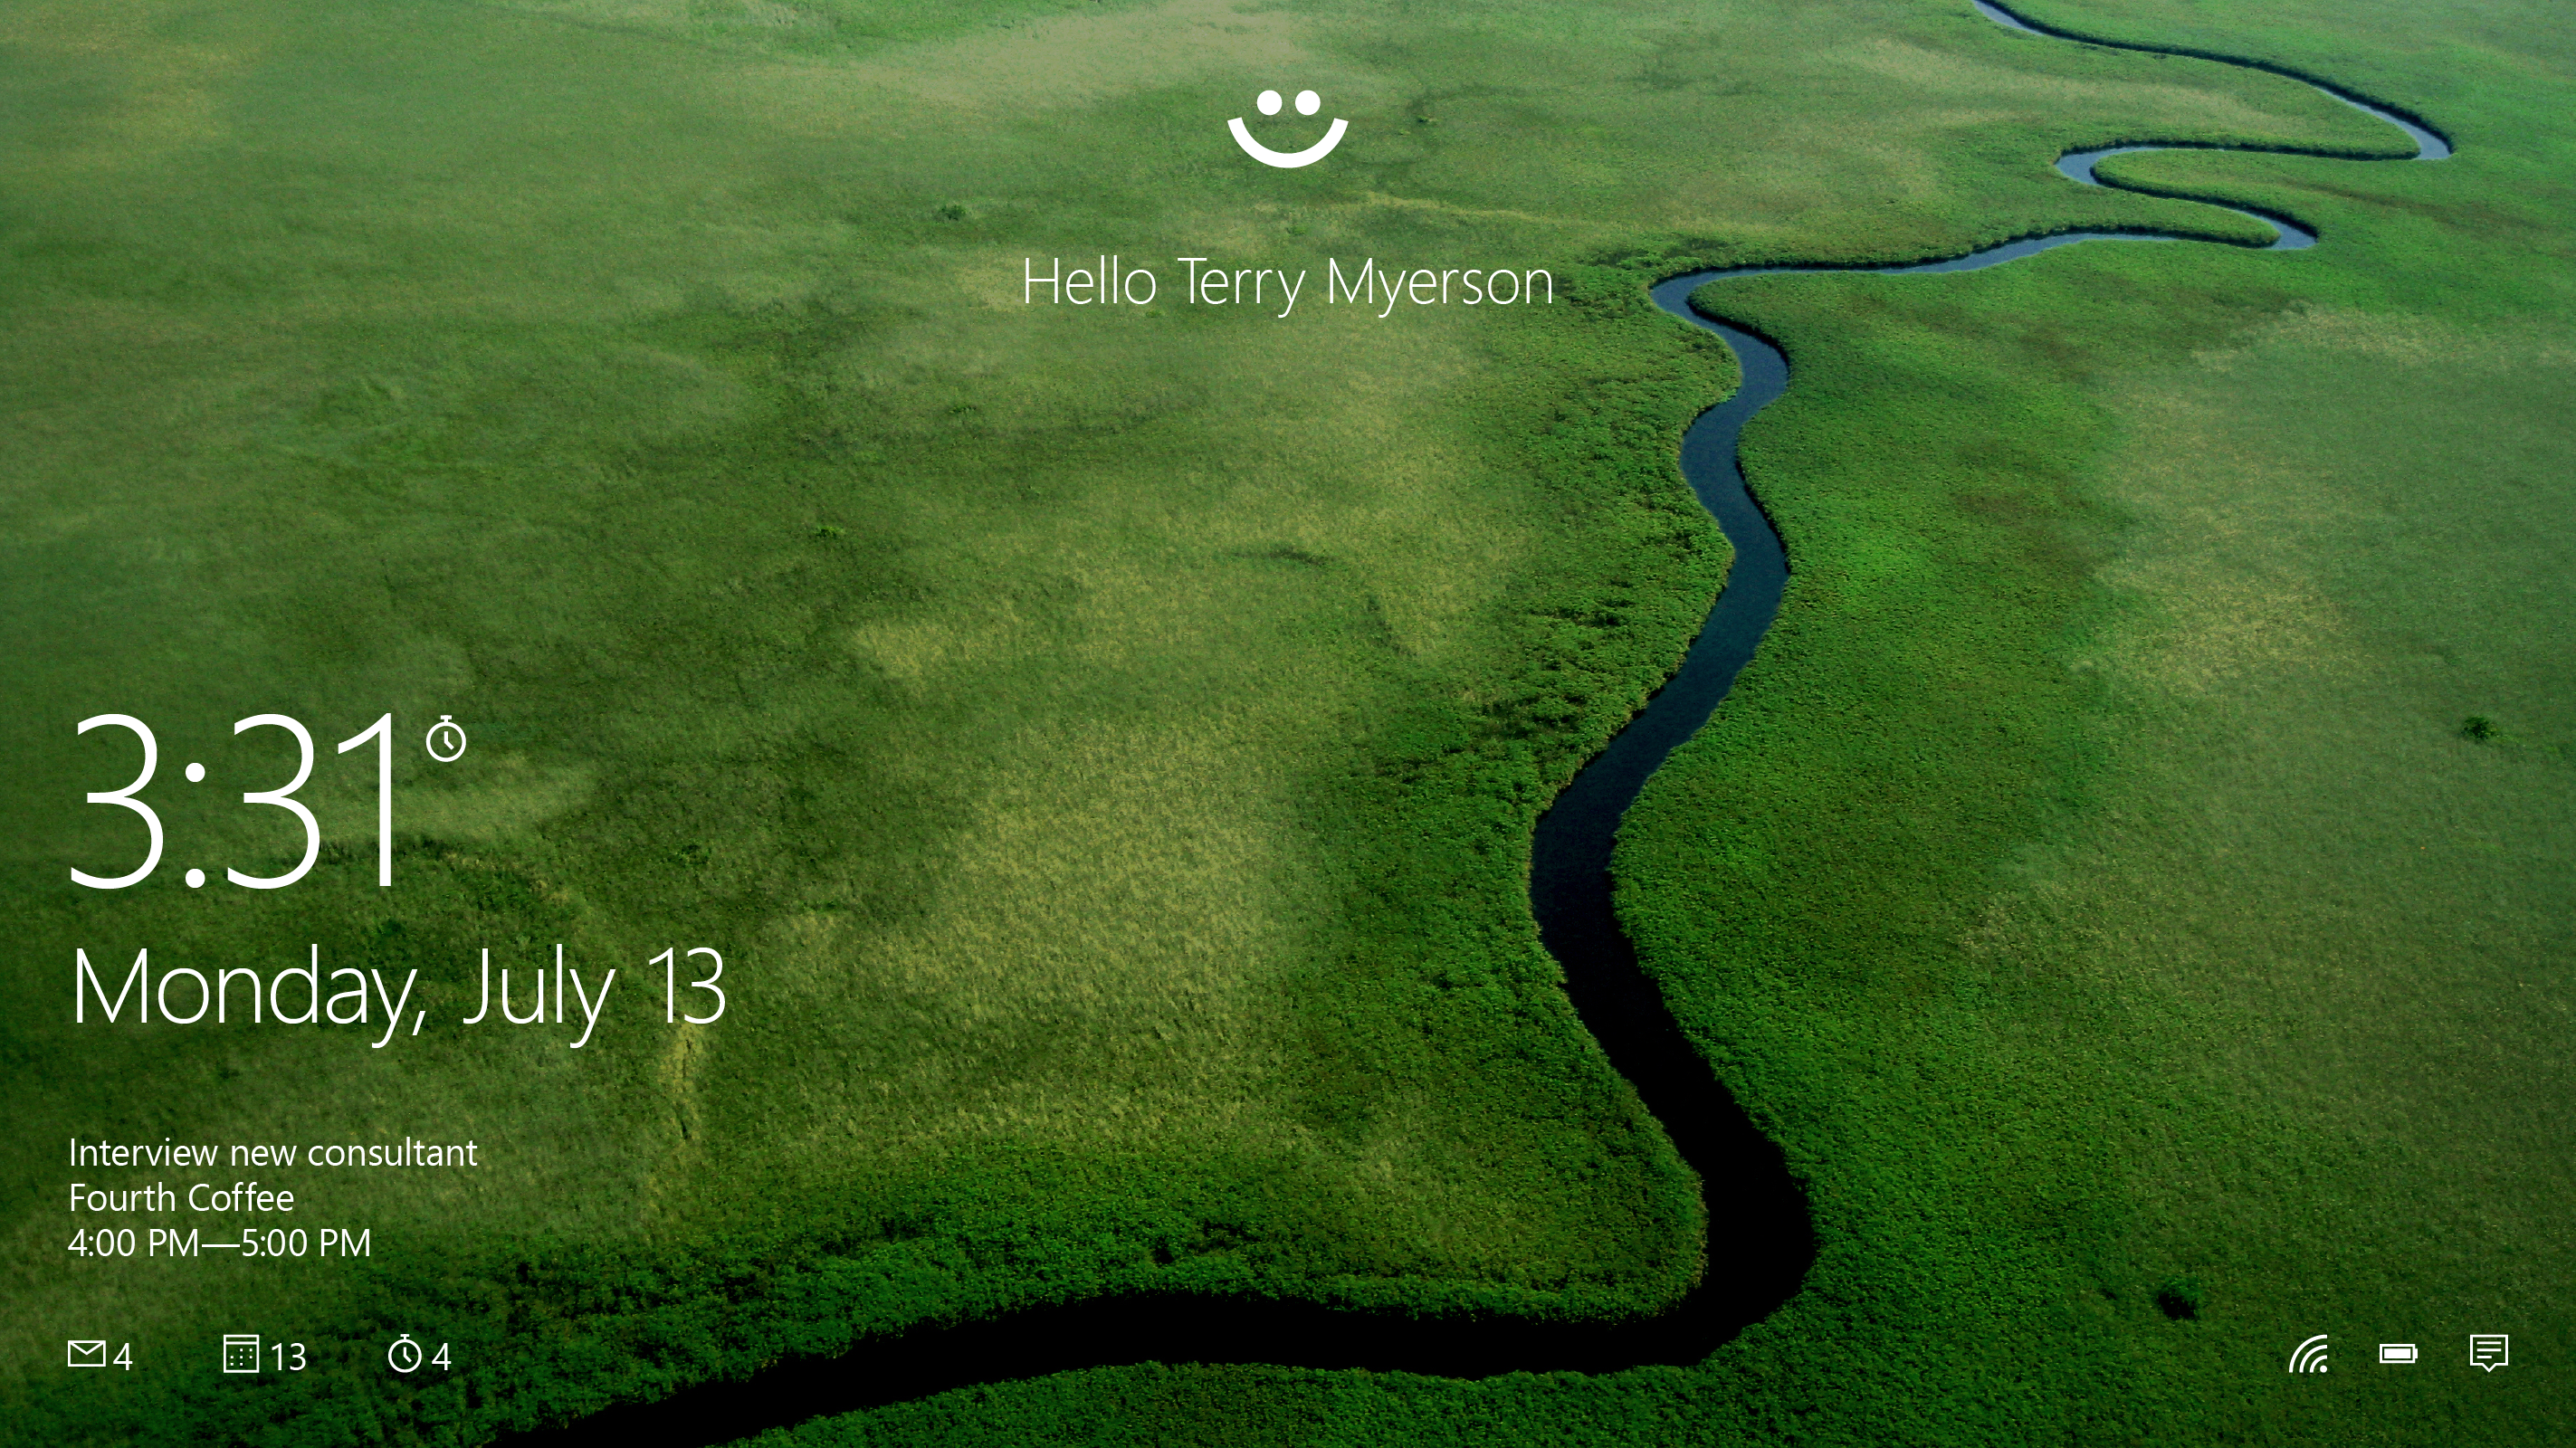 Making windows 10 more personal and more secure with windows hello making windows 10 more personal and more secure with windows hello windows experience blogwindows experience blog ccuart Images